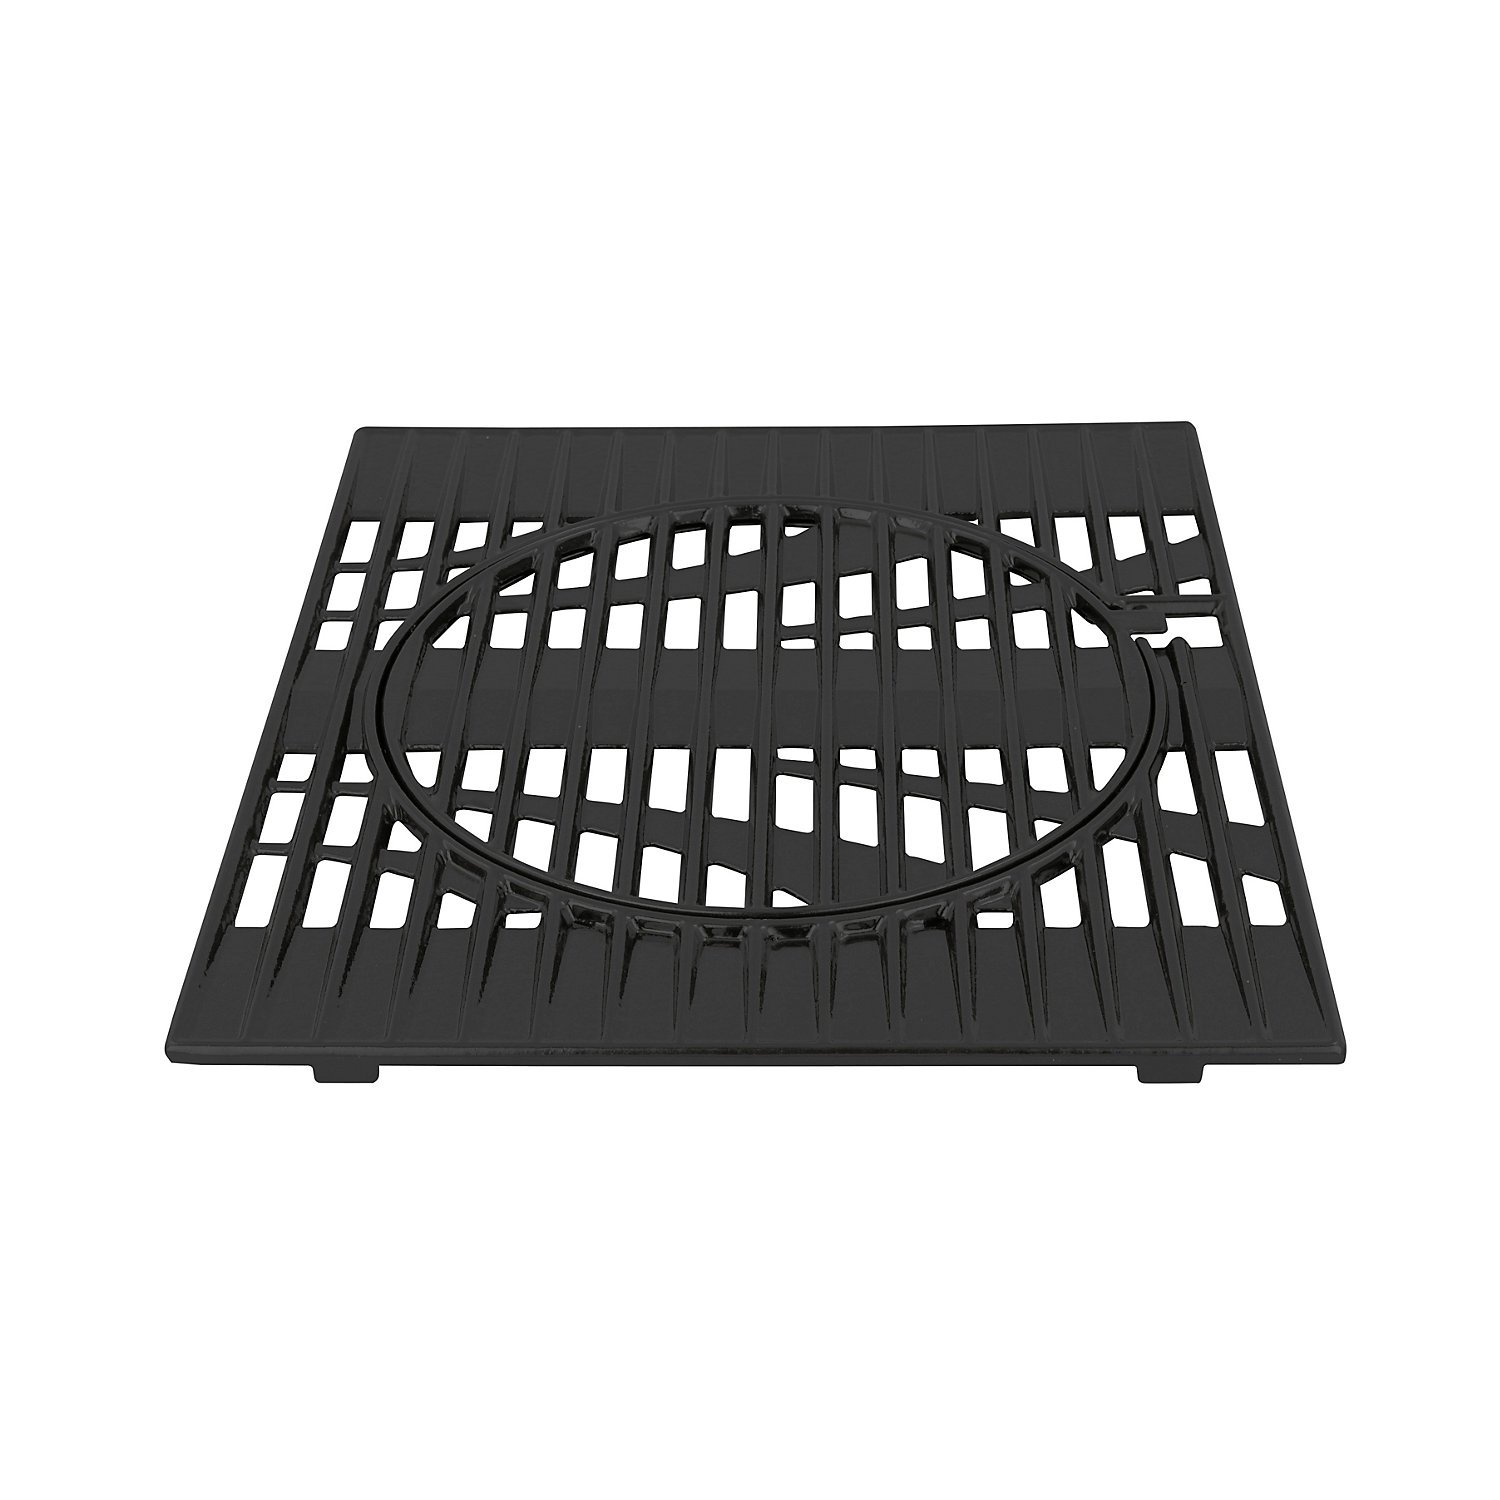 Campingaz Culinary Modular Cast-Iron Barbecue Grid 2000014580